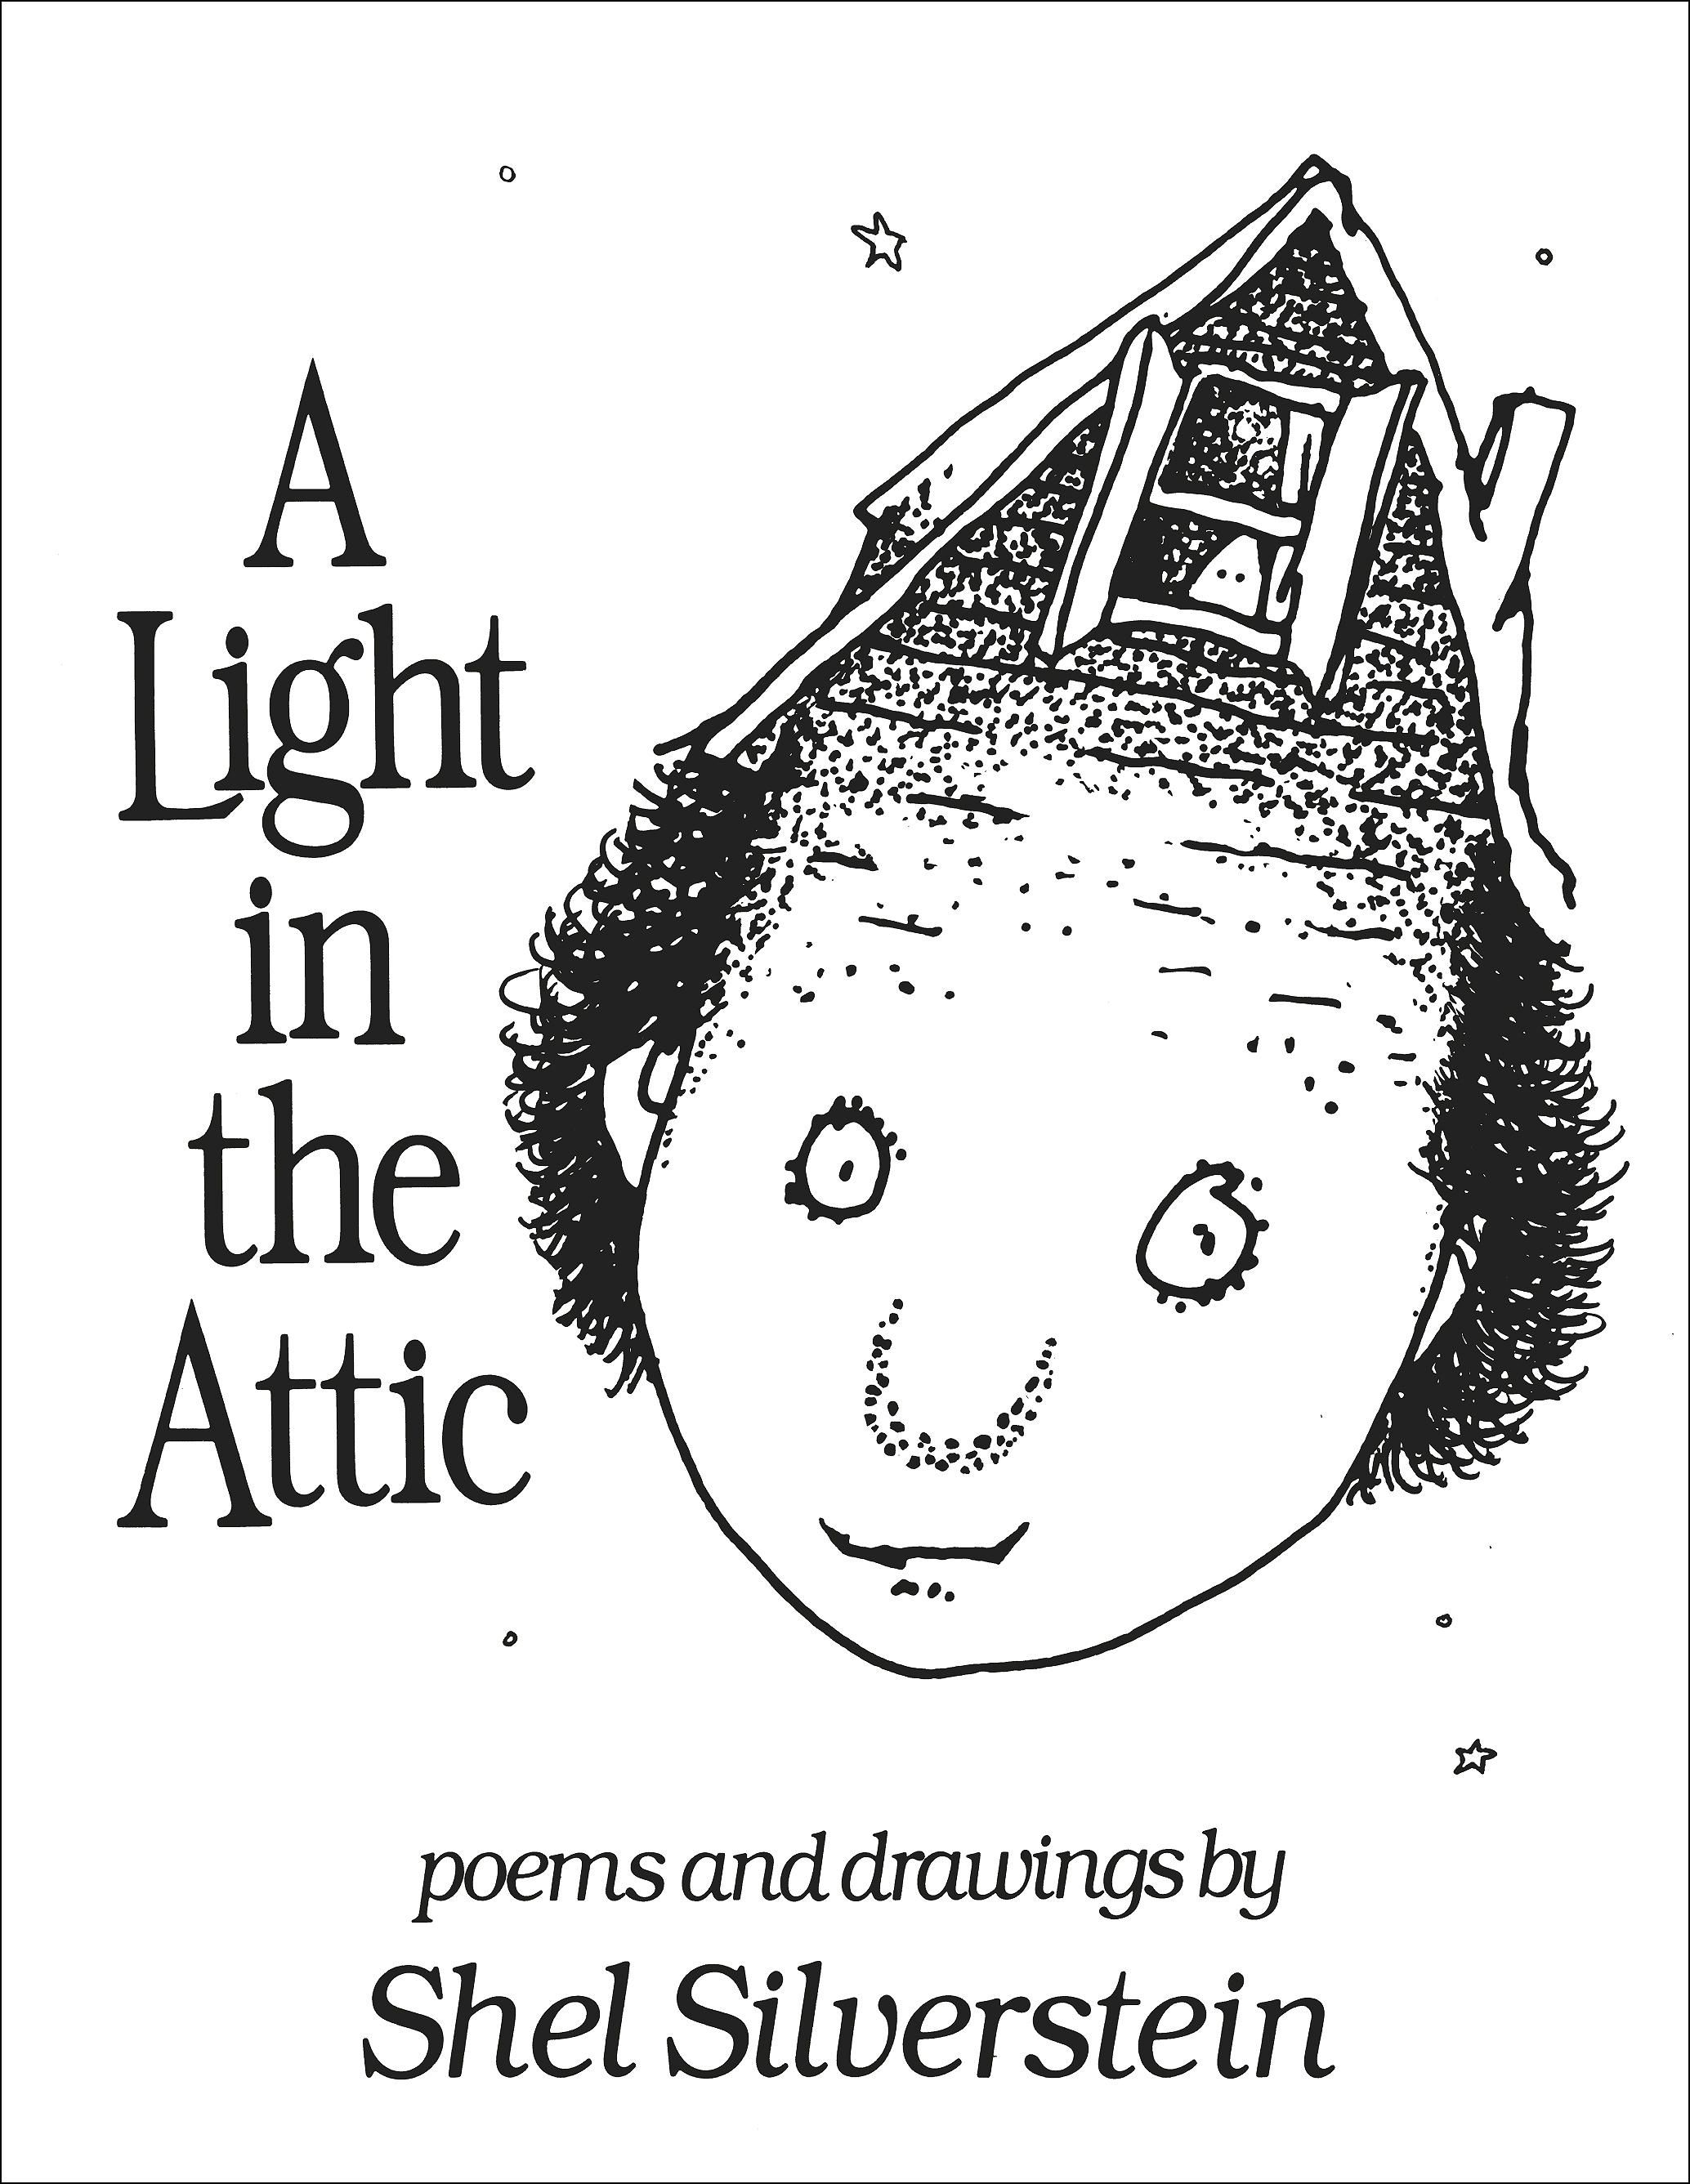 Image Result For Shel Silverstein Book Cover